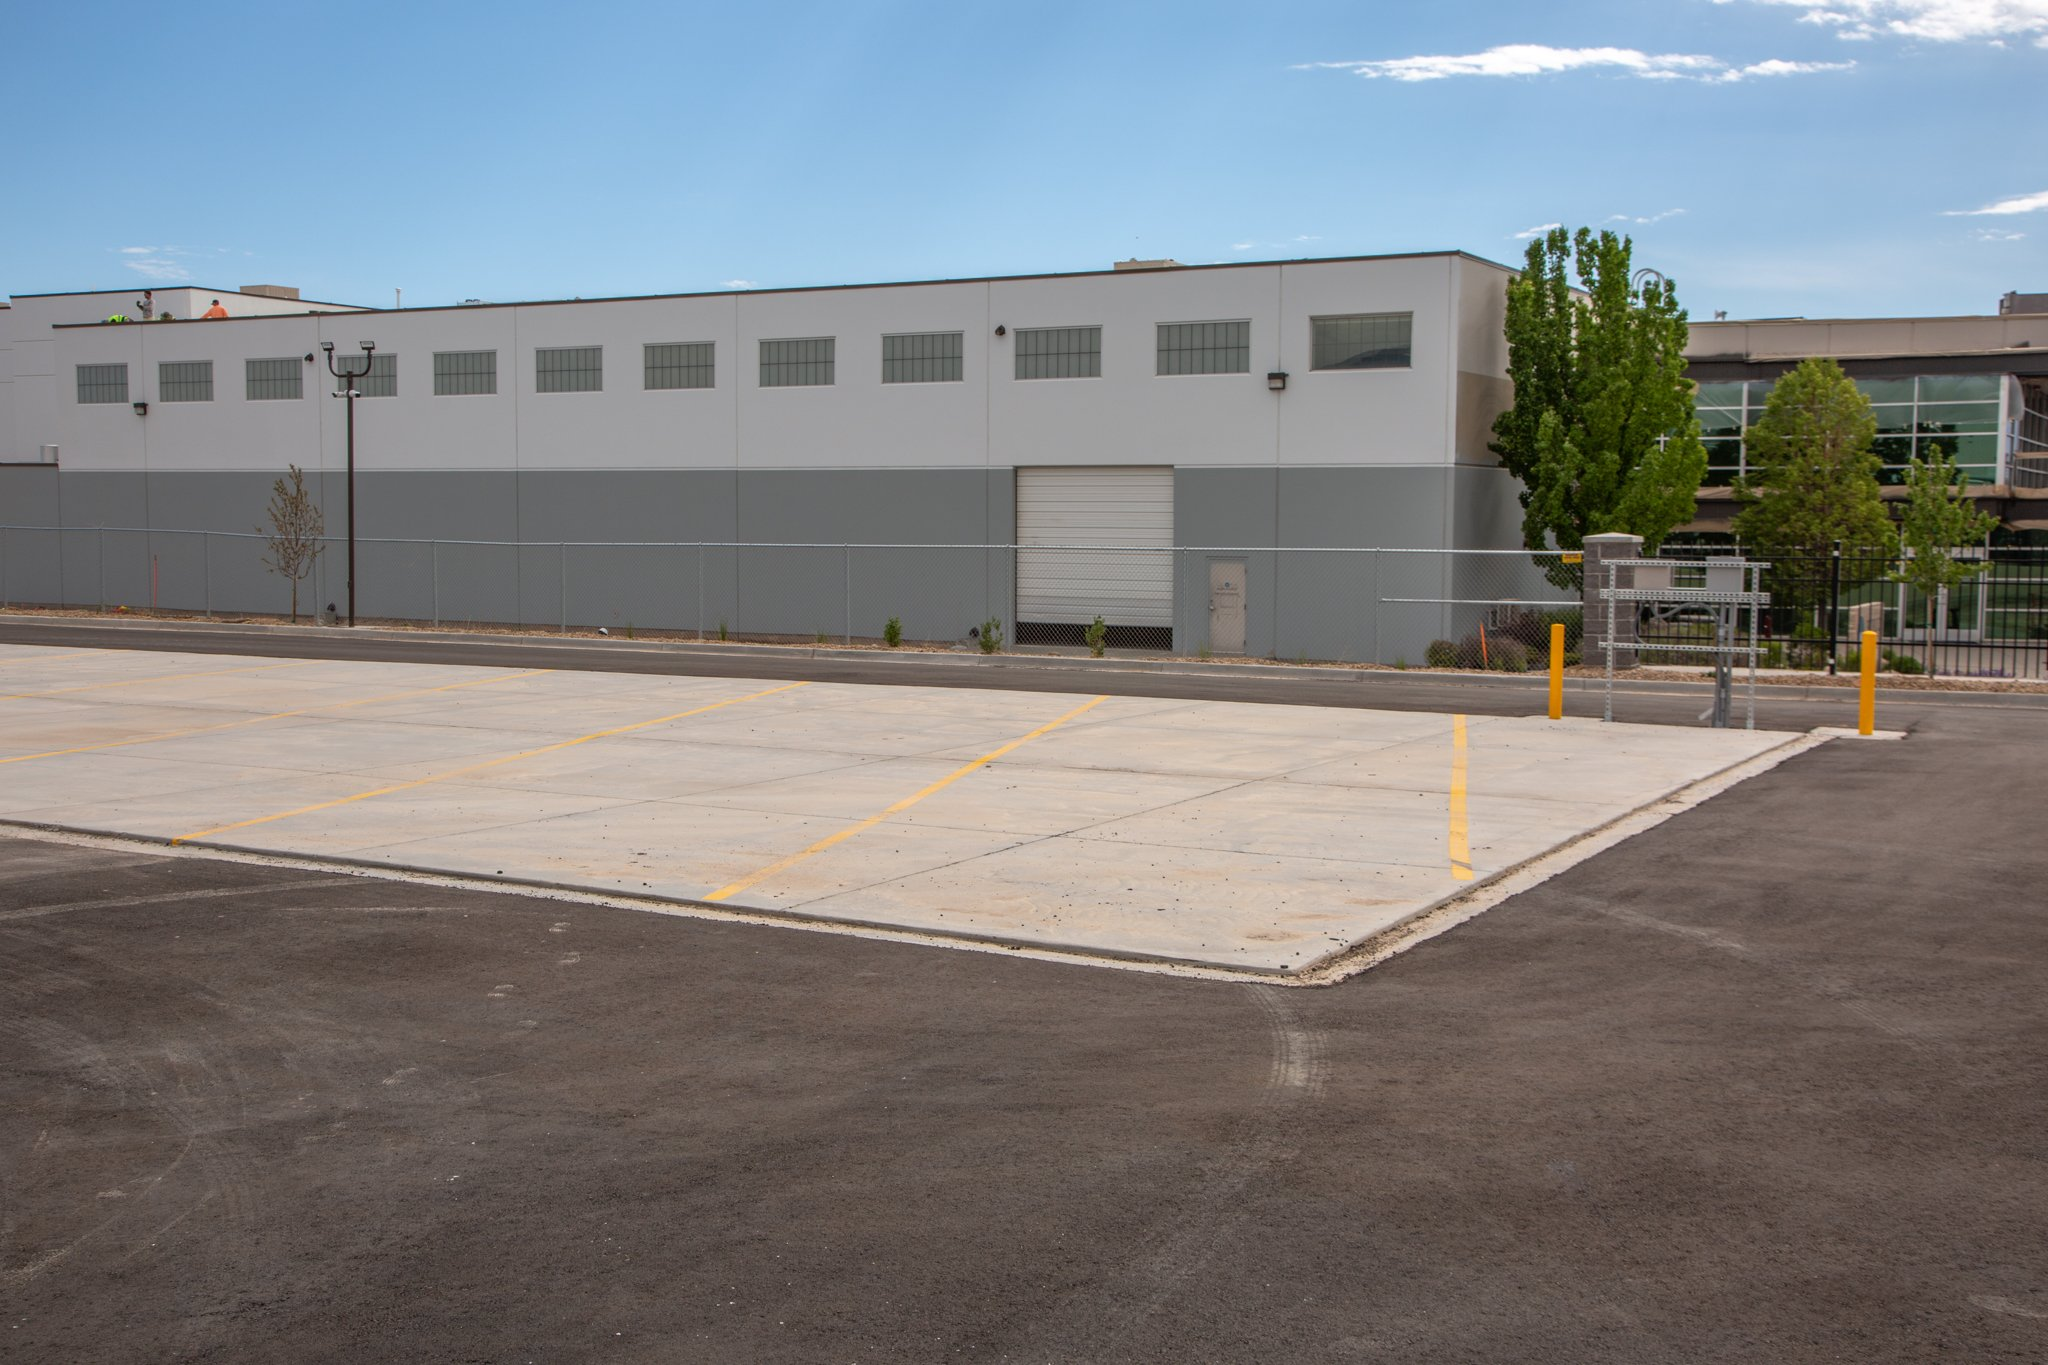 40x12 Parking Lot self storage unit